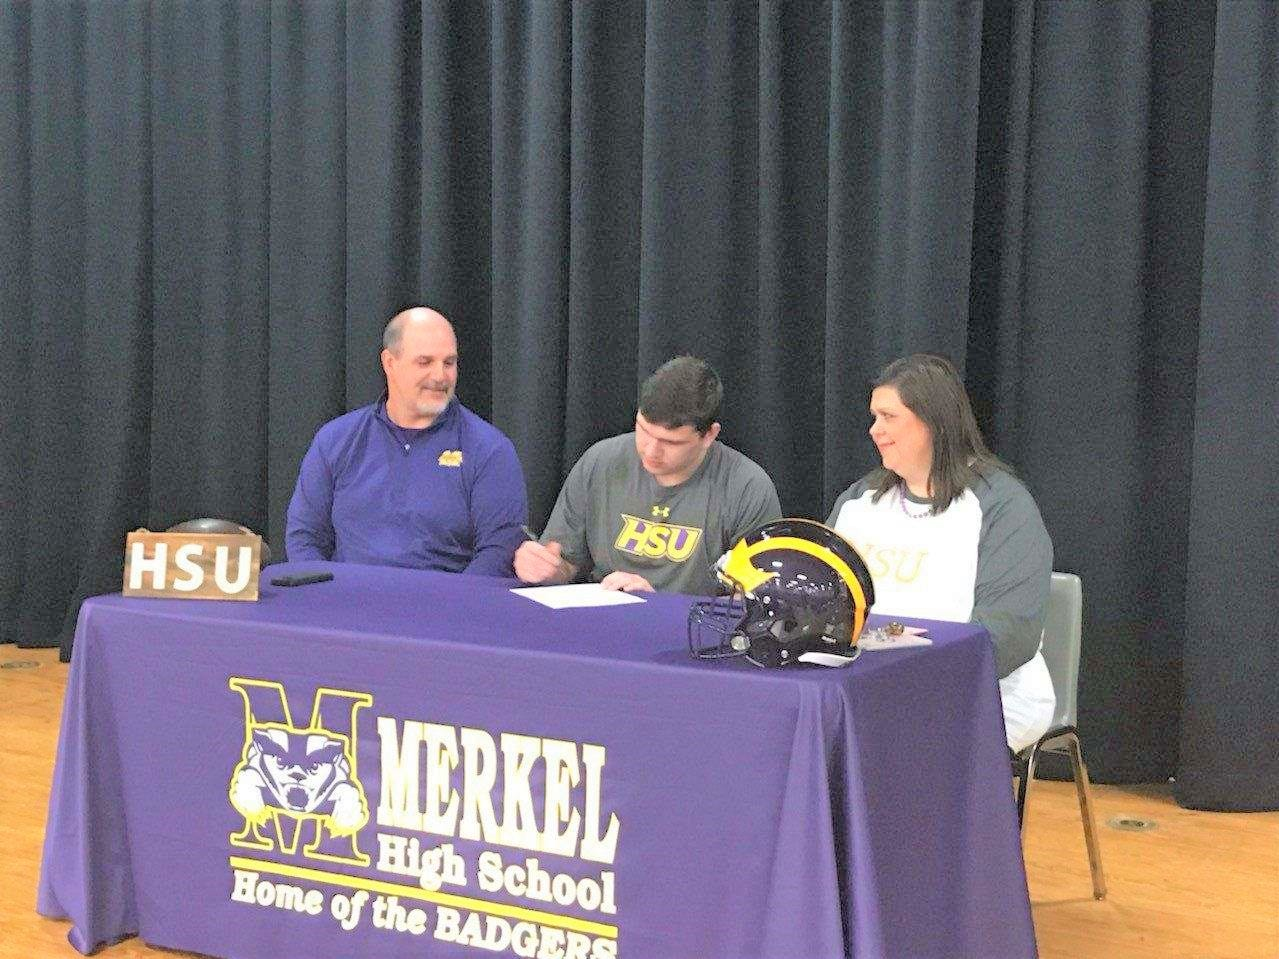 Merkel's Luke Williams signed to play football at Hardin-Simmons.